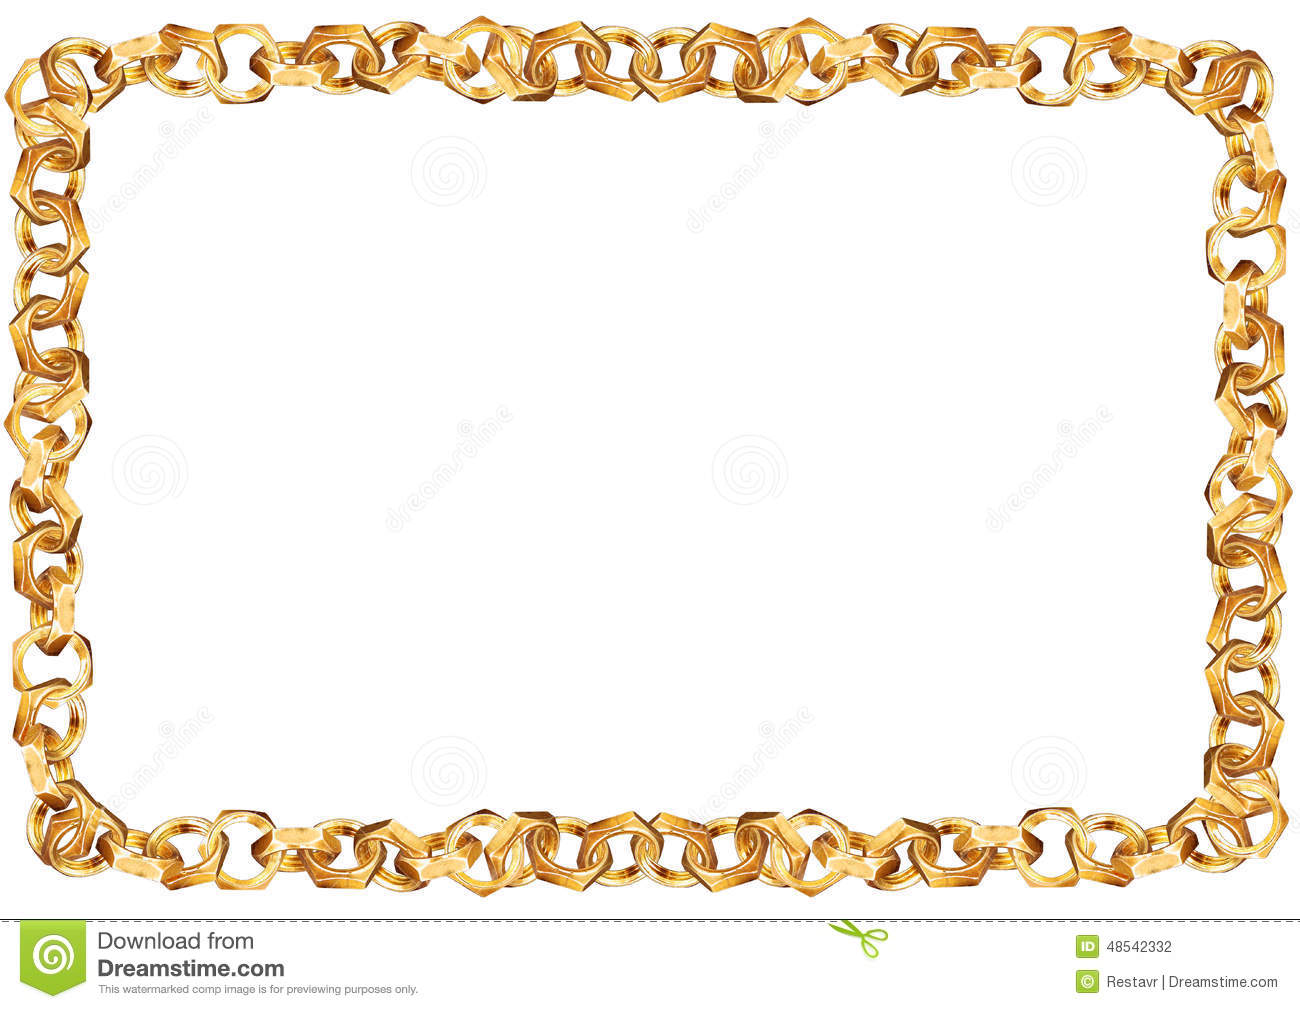 ... variety of nuts in the form of a gold chain. Additional Format PNG